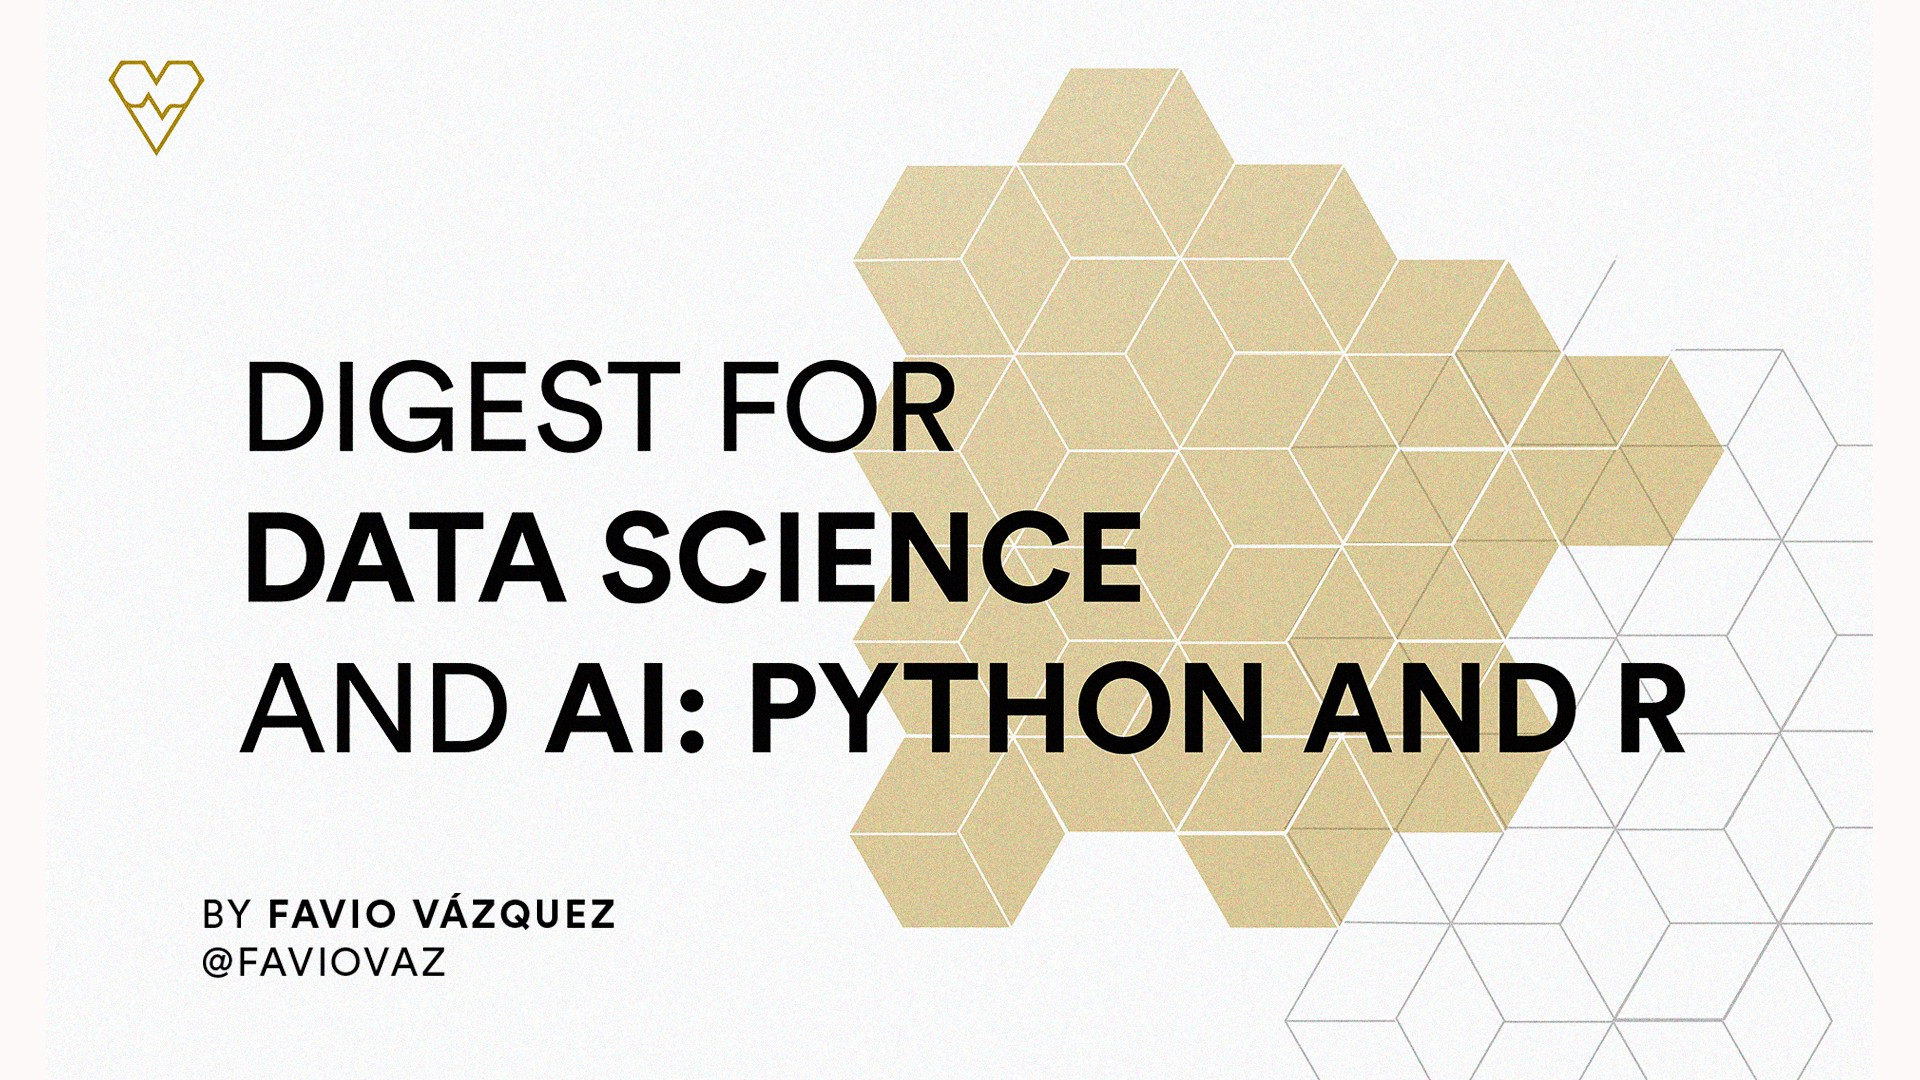 Weekly Digest for Data Science and AI: Python and R (Volume 1)